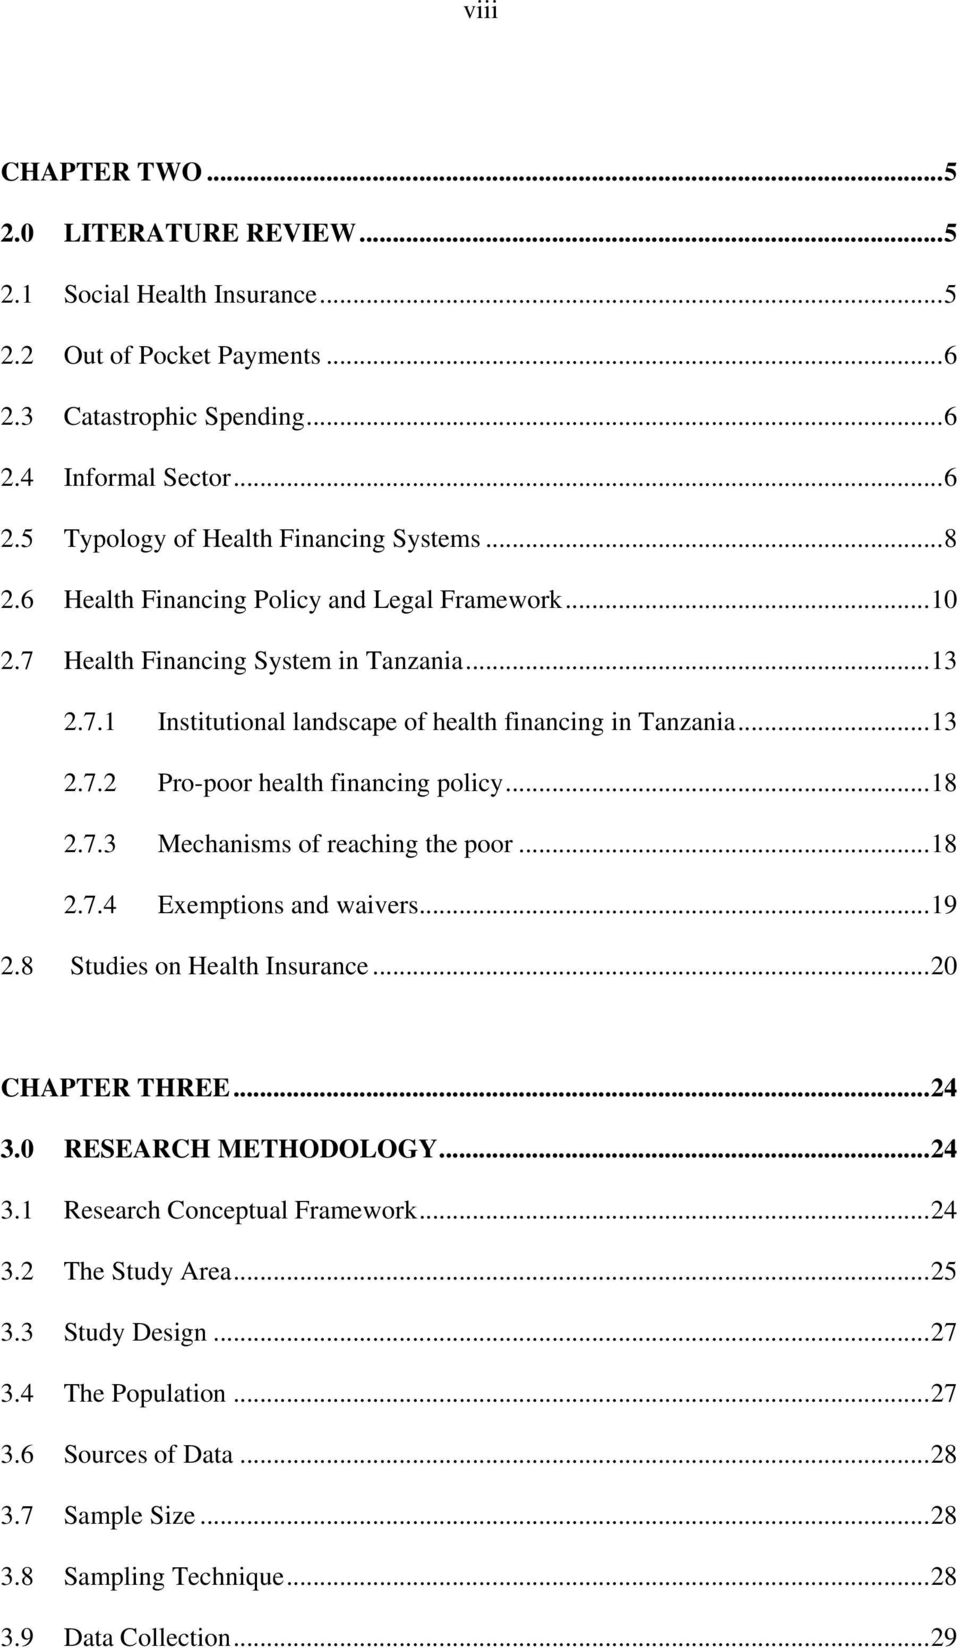 .. 18 2.7.3 Mechanisms of reaching the poor... 18 2.7.4 Exemptions and waivers... 19 2.8 Studies on Health Insurance... 20 CHAPTER THREE... 24 3.0 RESEARCH METHODOLOGY... 24 3.1 Research Conceptual Framework.